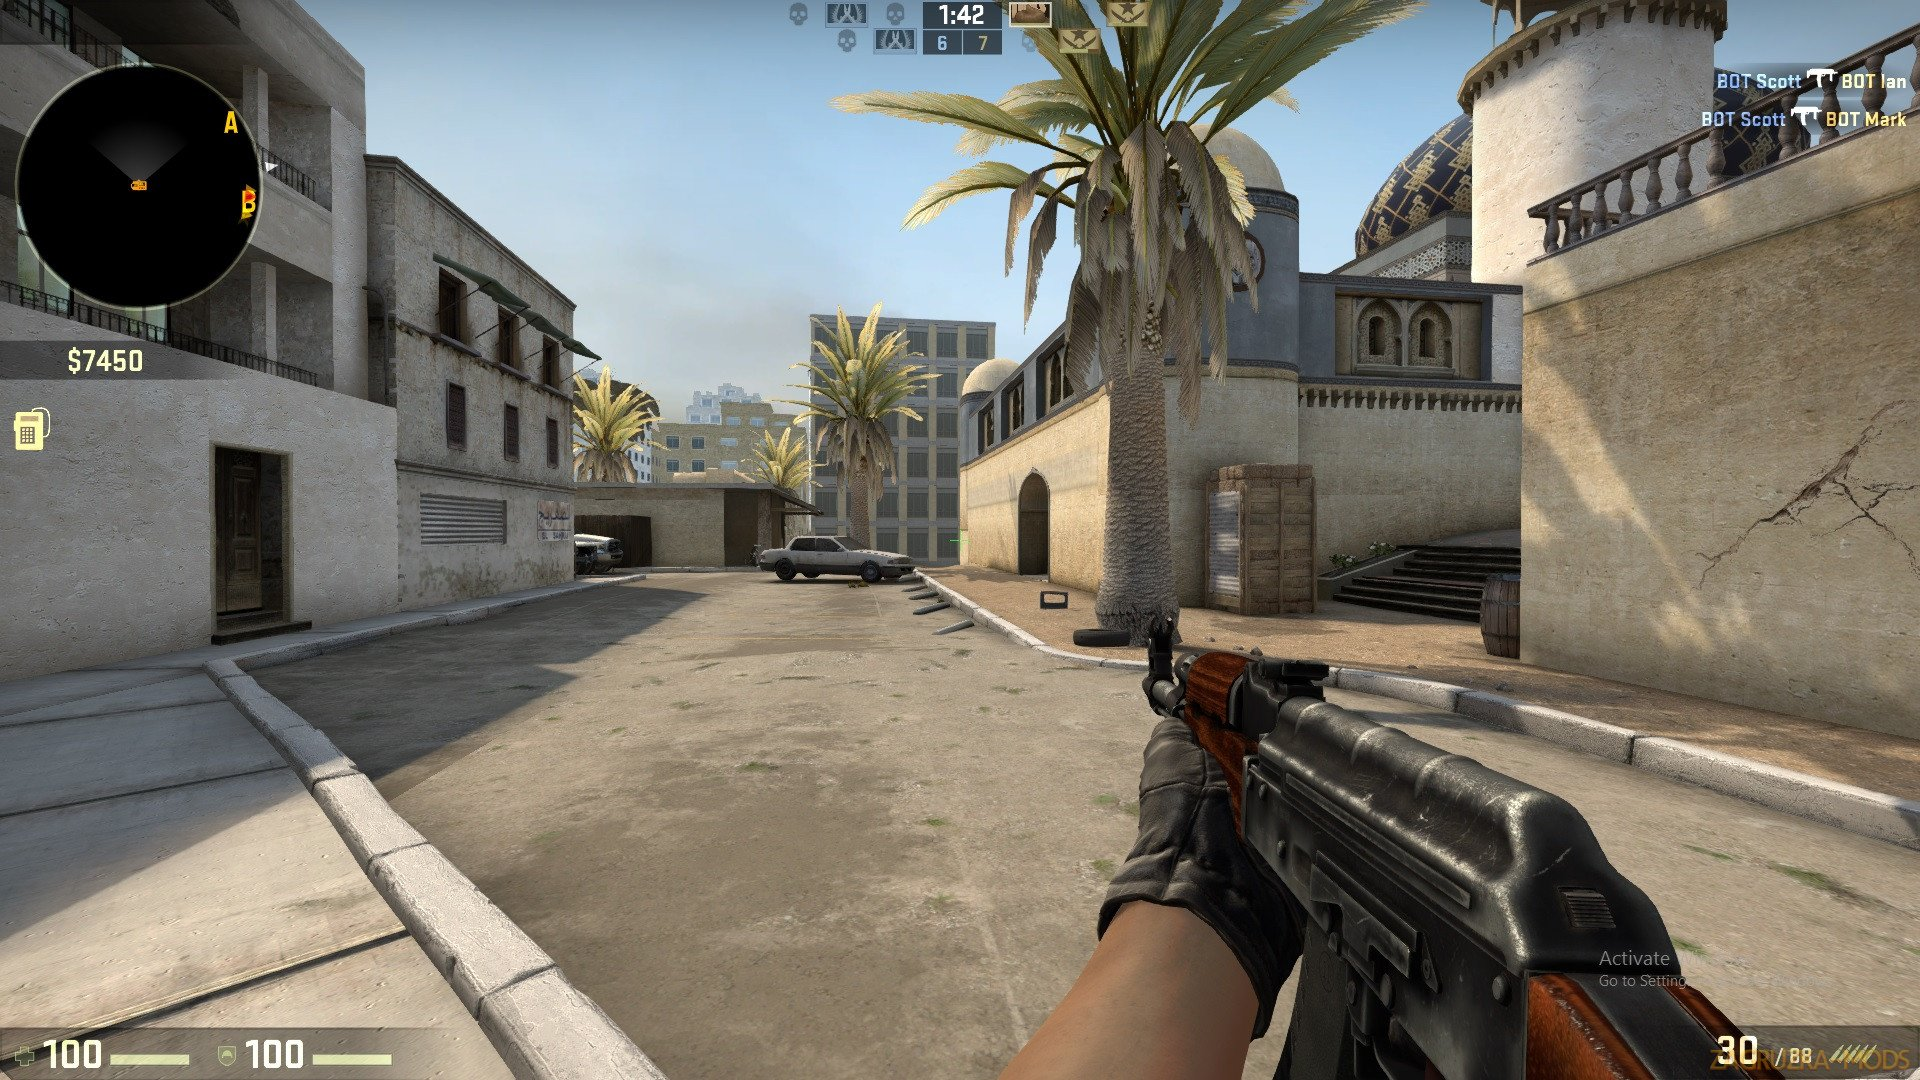 de_palms Map v1.0 for CS:GO